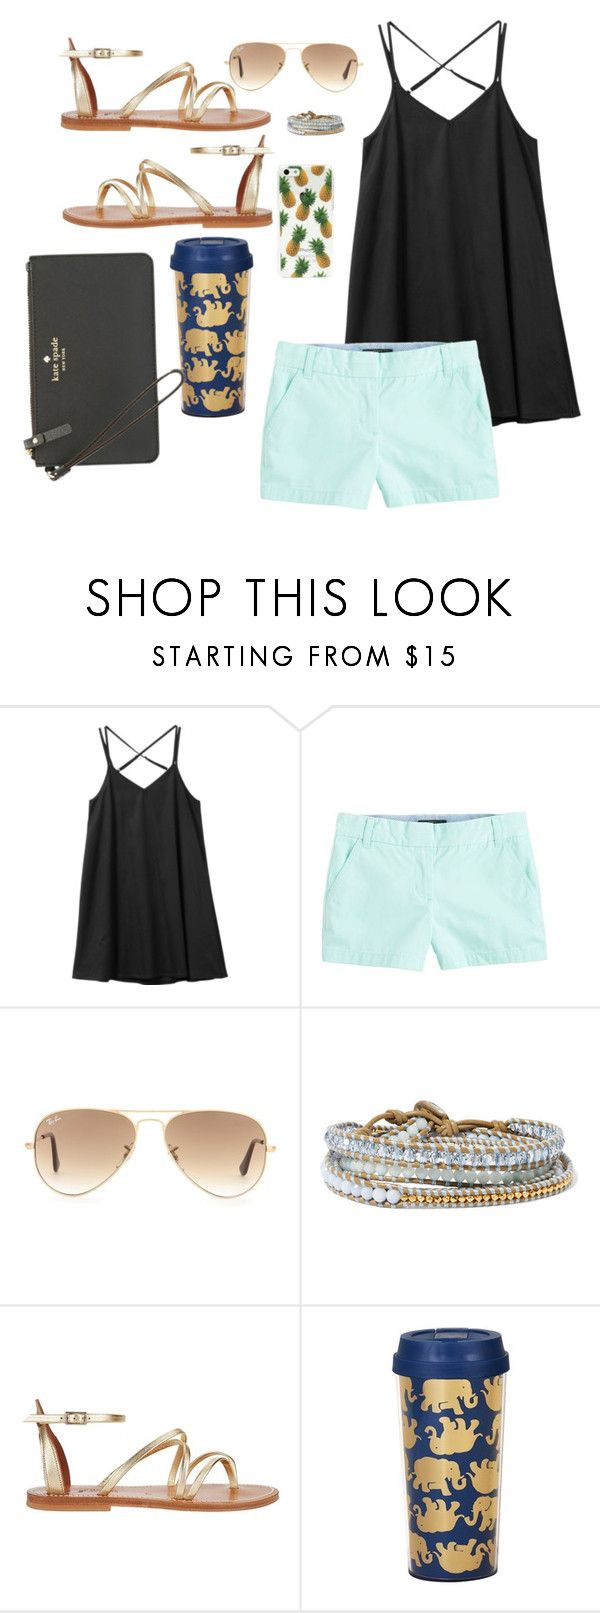 """Modern"" by erinlarson0226 ❤ liked on Polyvore featuring RVCA, J.Crew, Ray-Ban, Chan Luu, K. Jacques, Lilly Pulitzer, Kate Spade and modern"